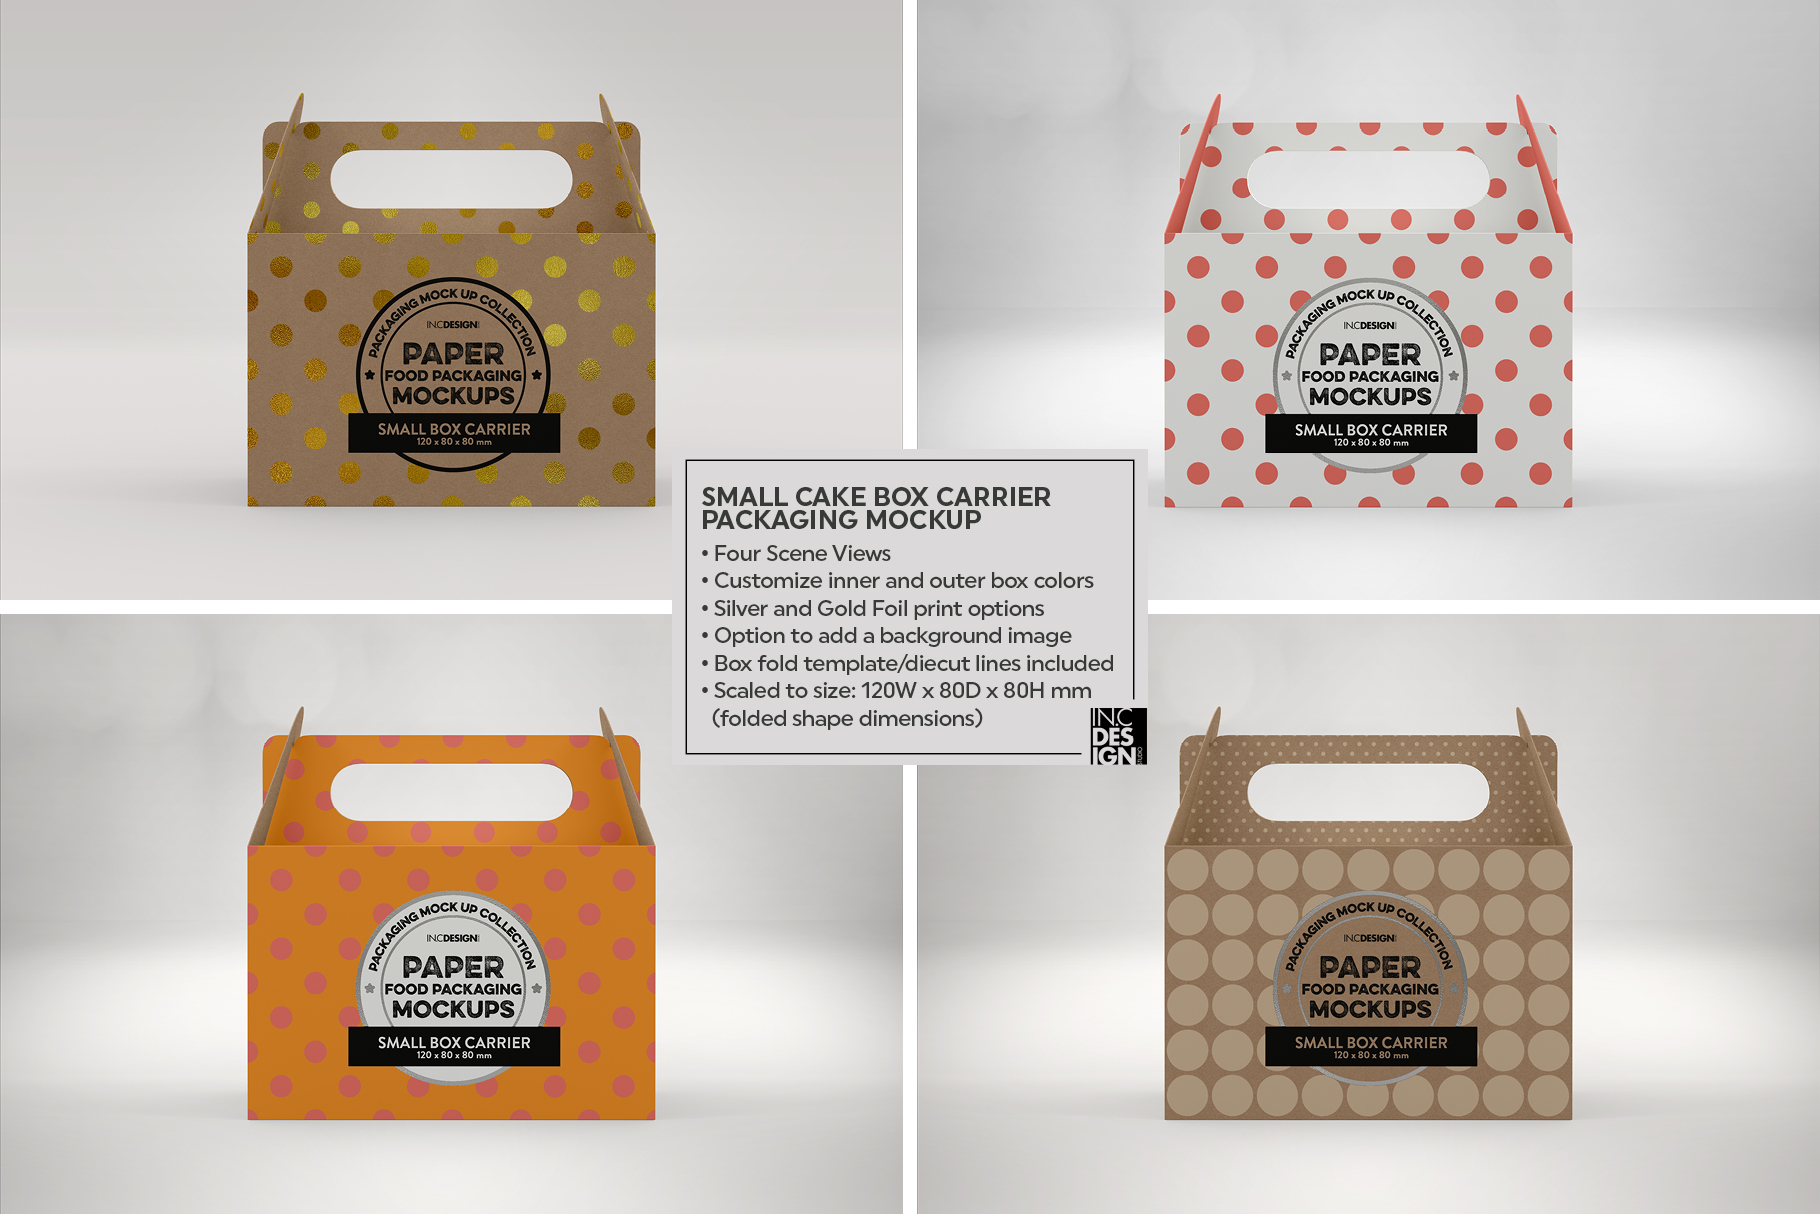 Small Cake Box Carrier Packaging Mockup example image 6